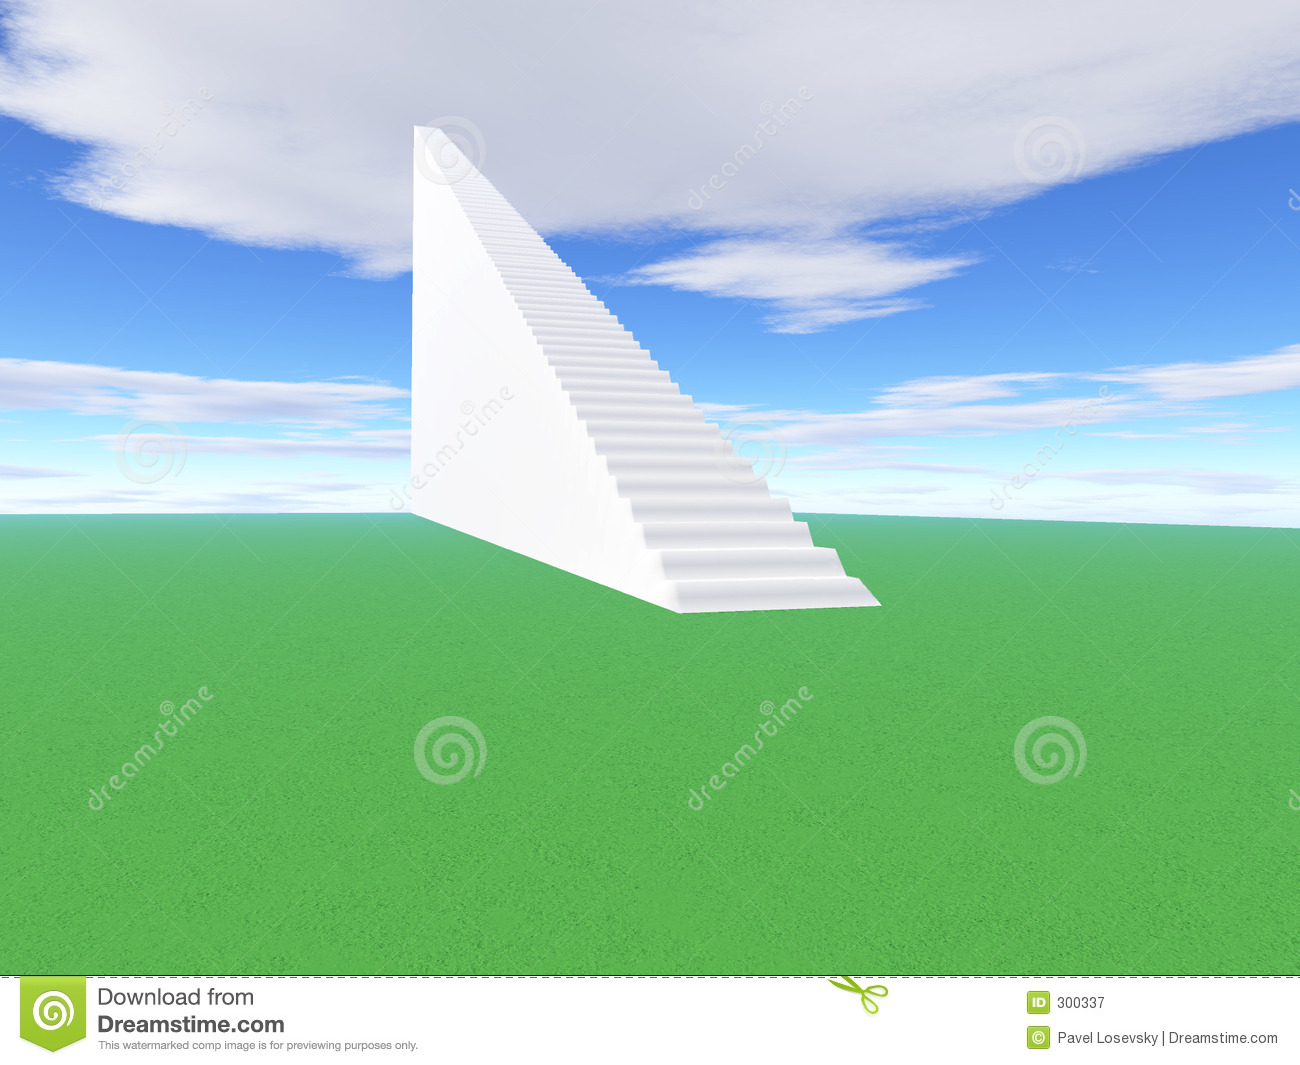 Stairway to go up to success